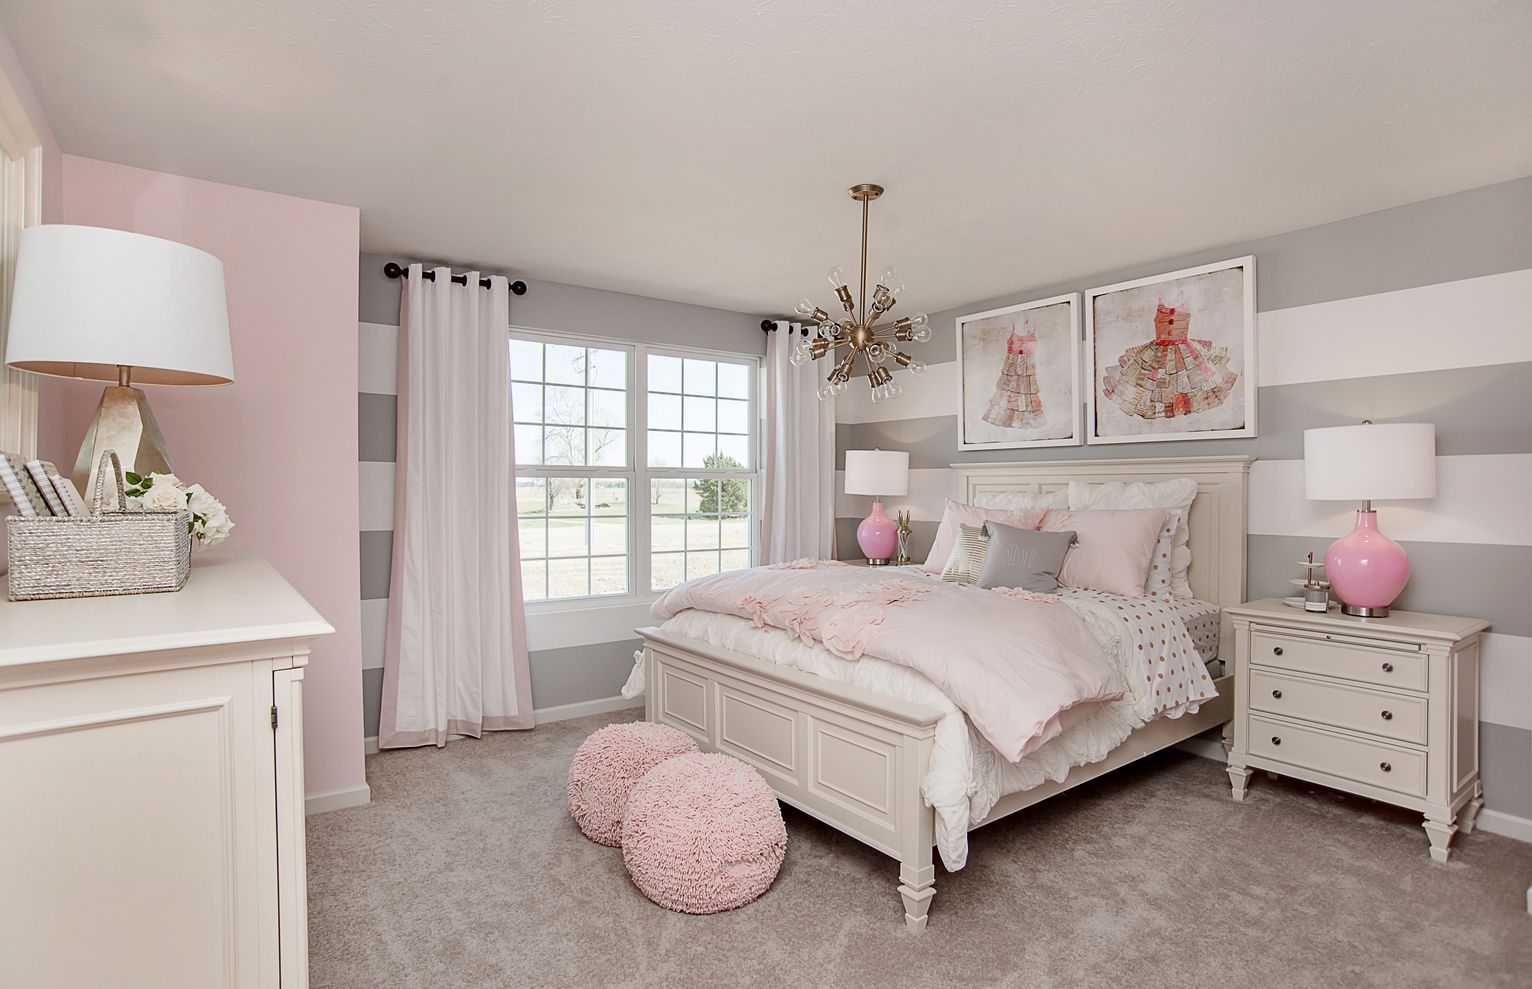 Cute bedroom designs 28 images cute decorating ideas for Cute bedroom ideas